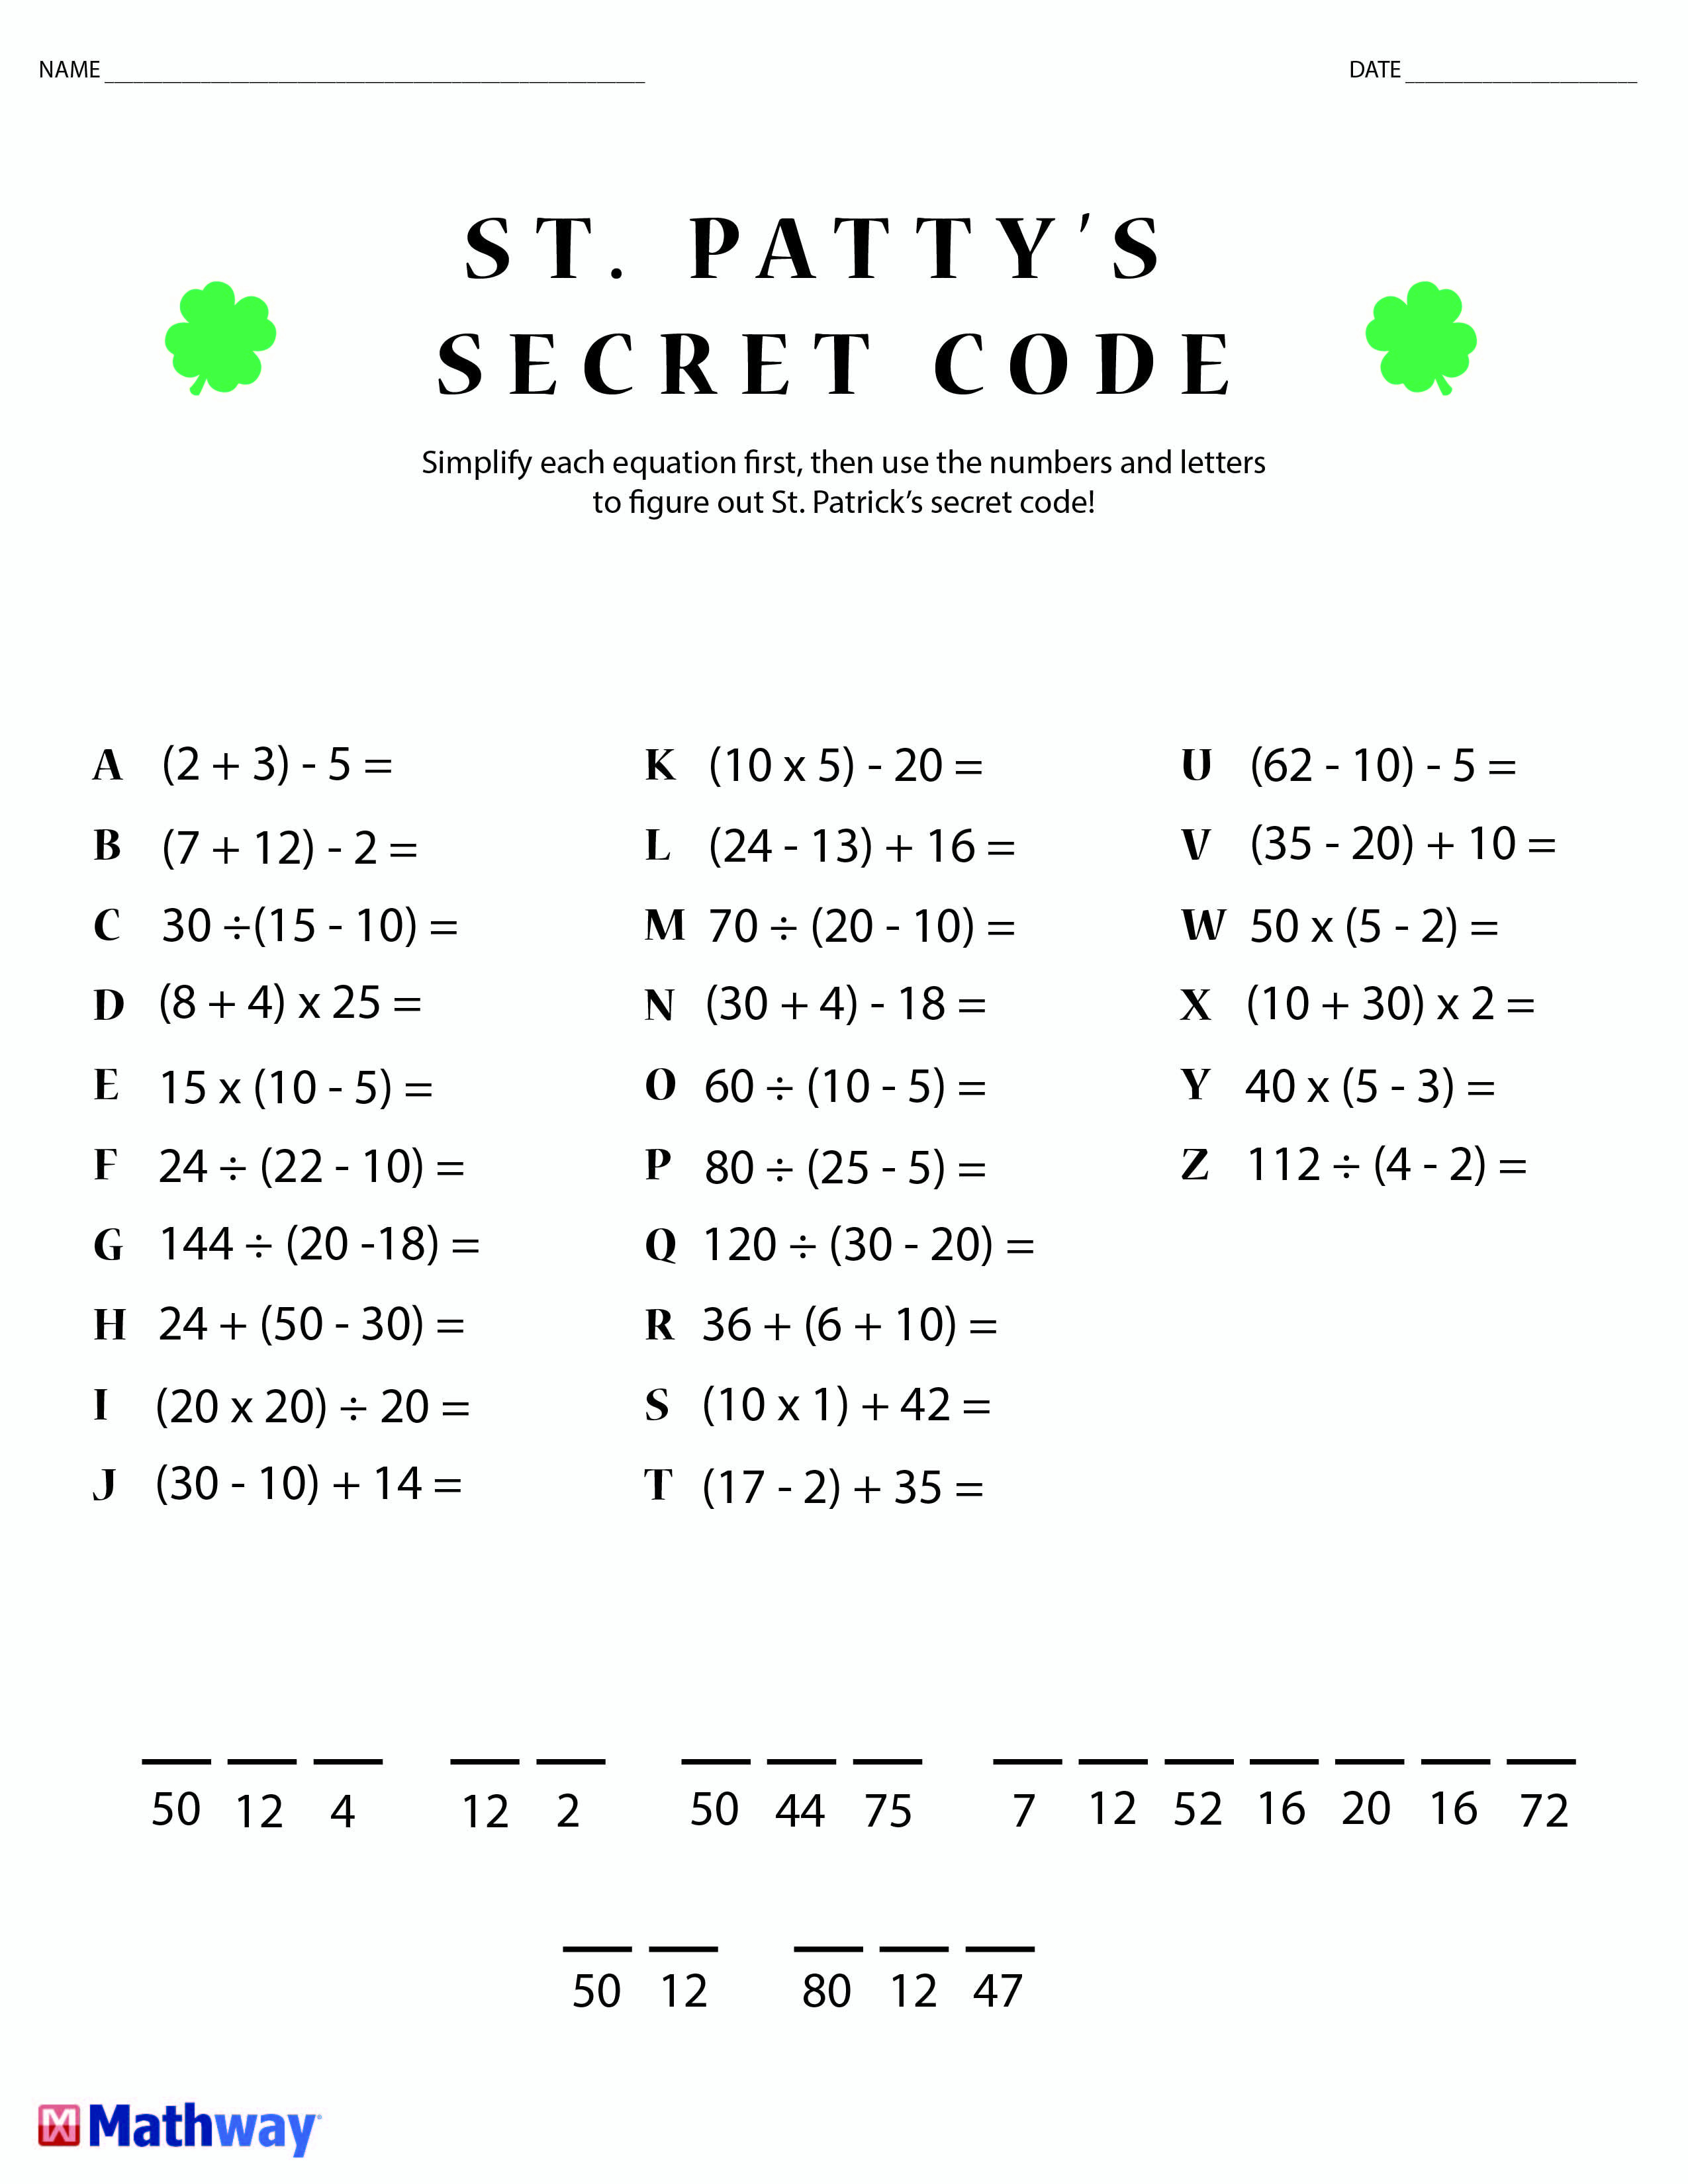 St. Patty's Day Crack The Secret Code Worksheet! Print This One Out | Crack The Code Worksheets Printable